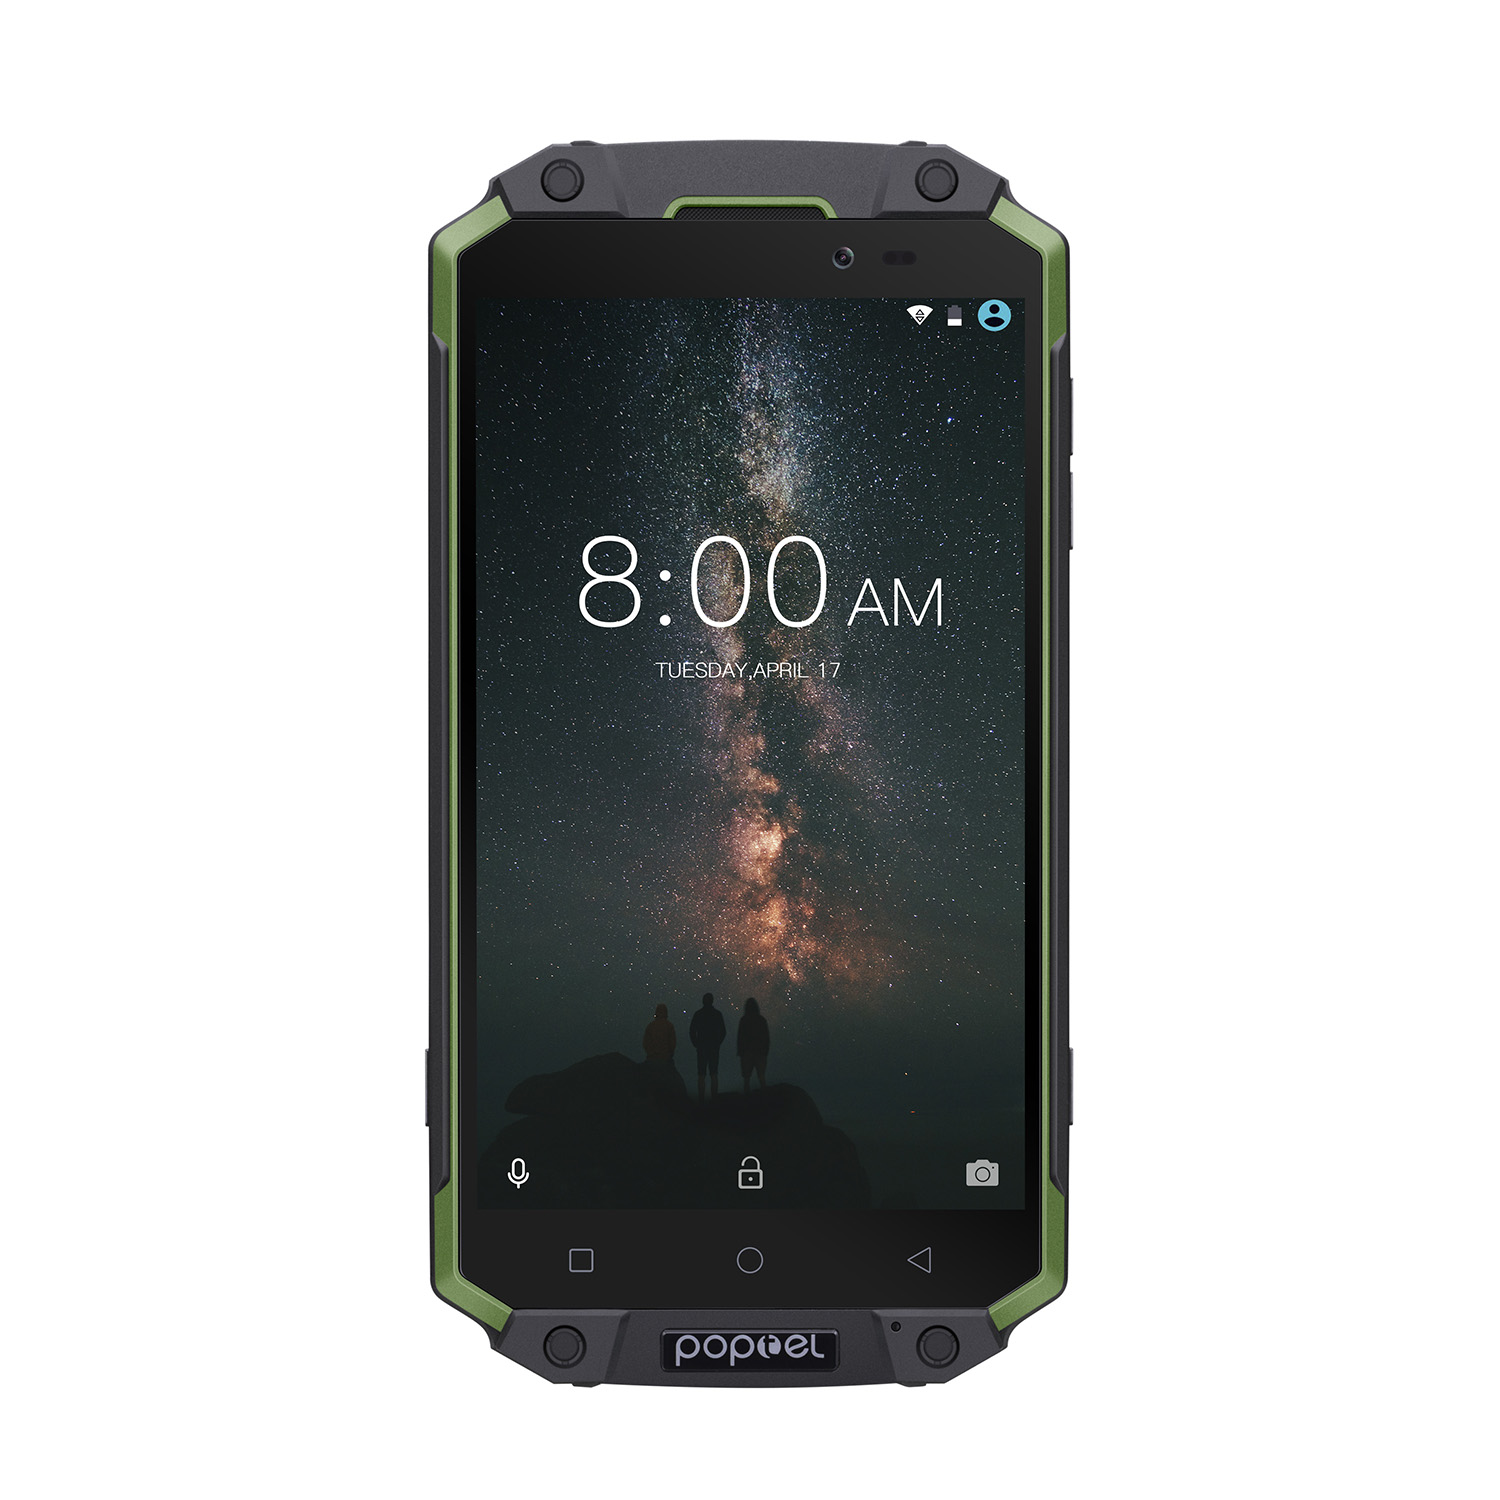 POPTEL P9000 MAX Android Phone